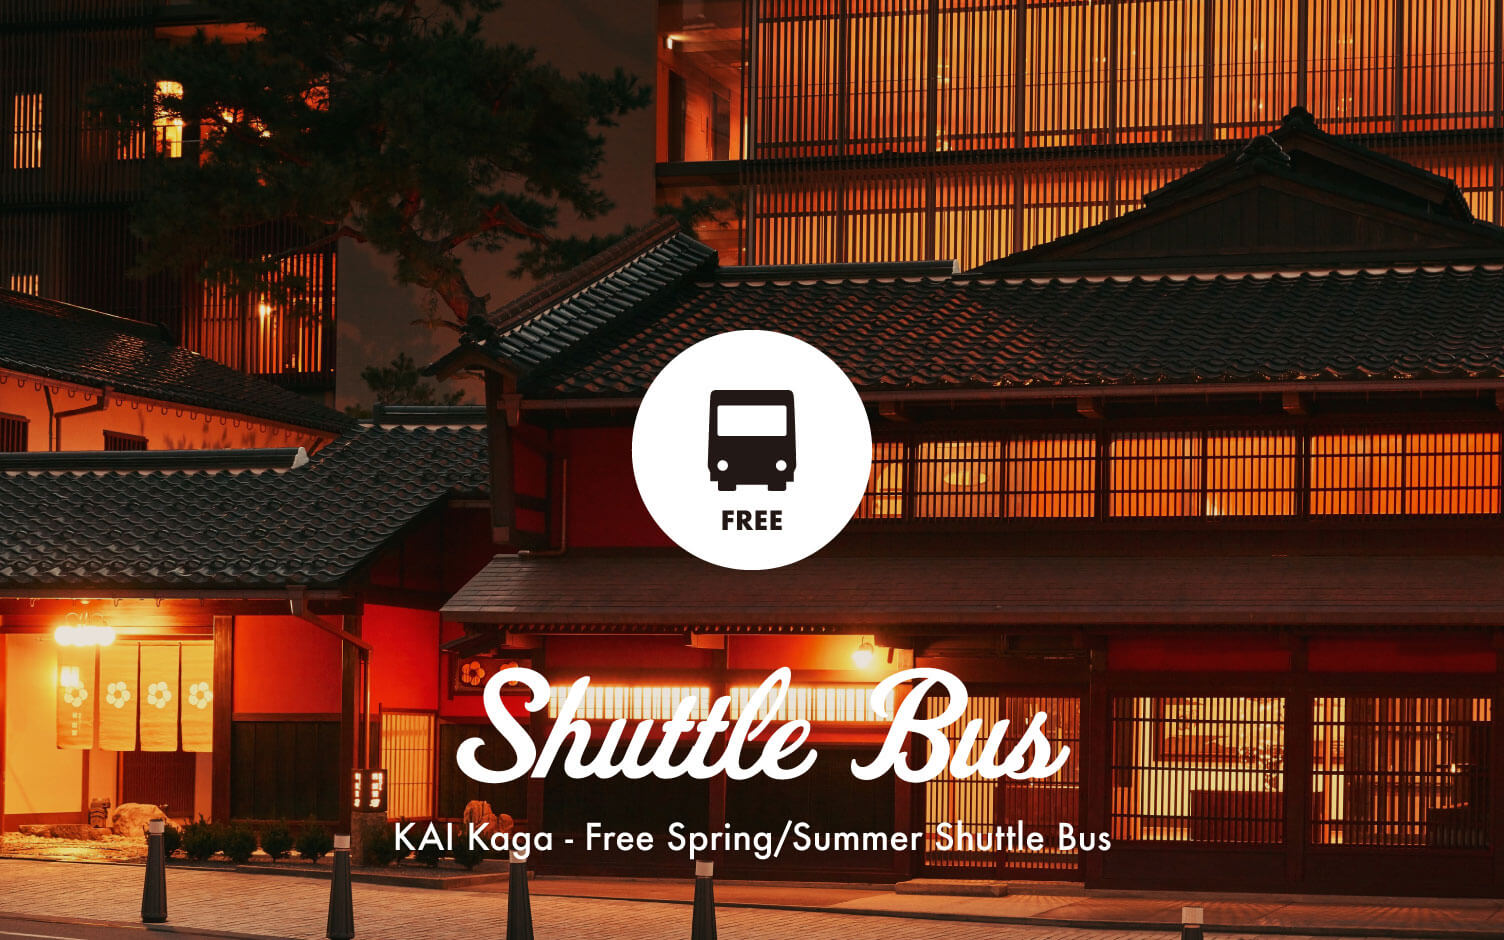 KAI Kaga's Free Shuttle Bus Starting from March, 2019